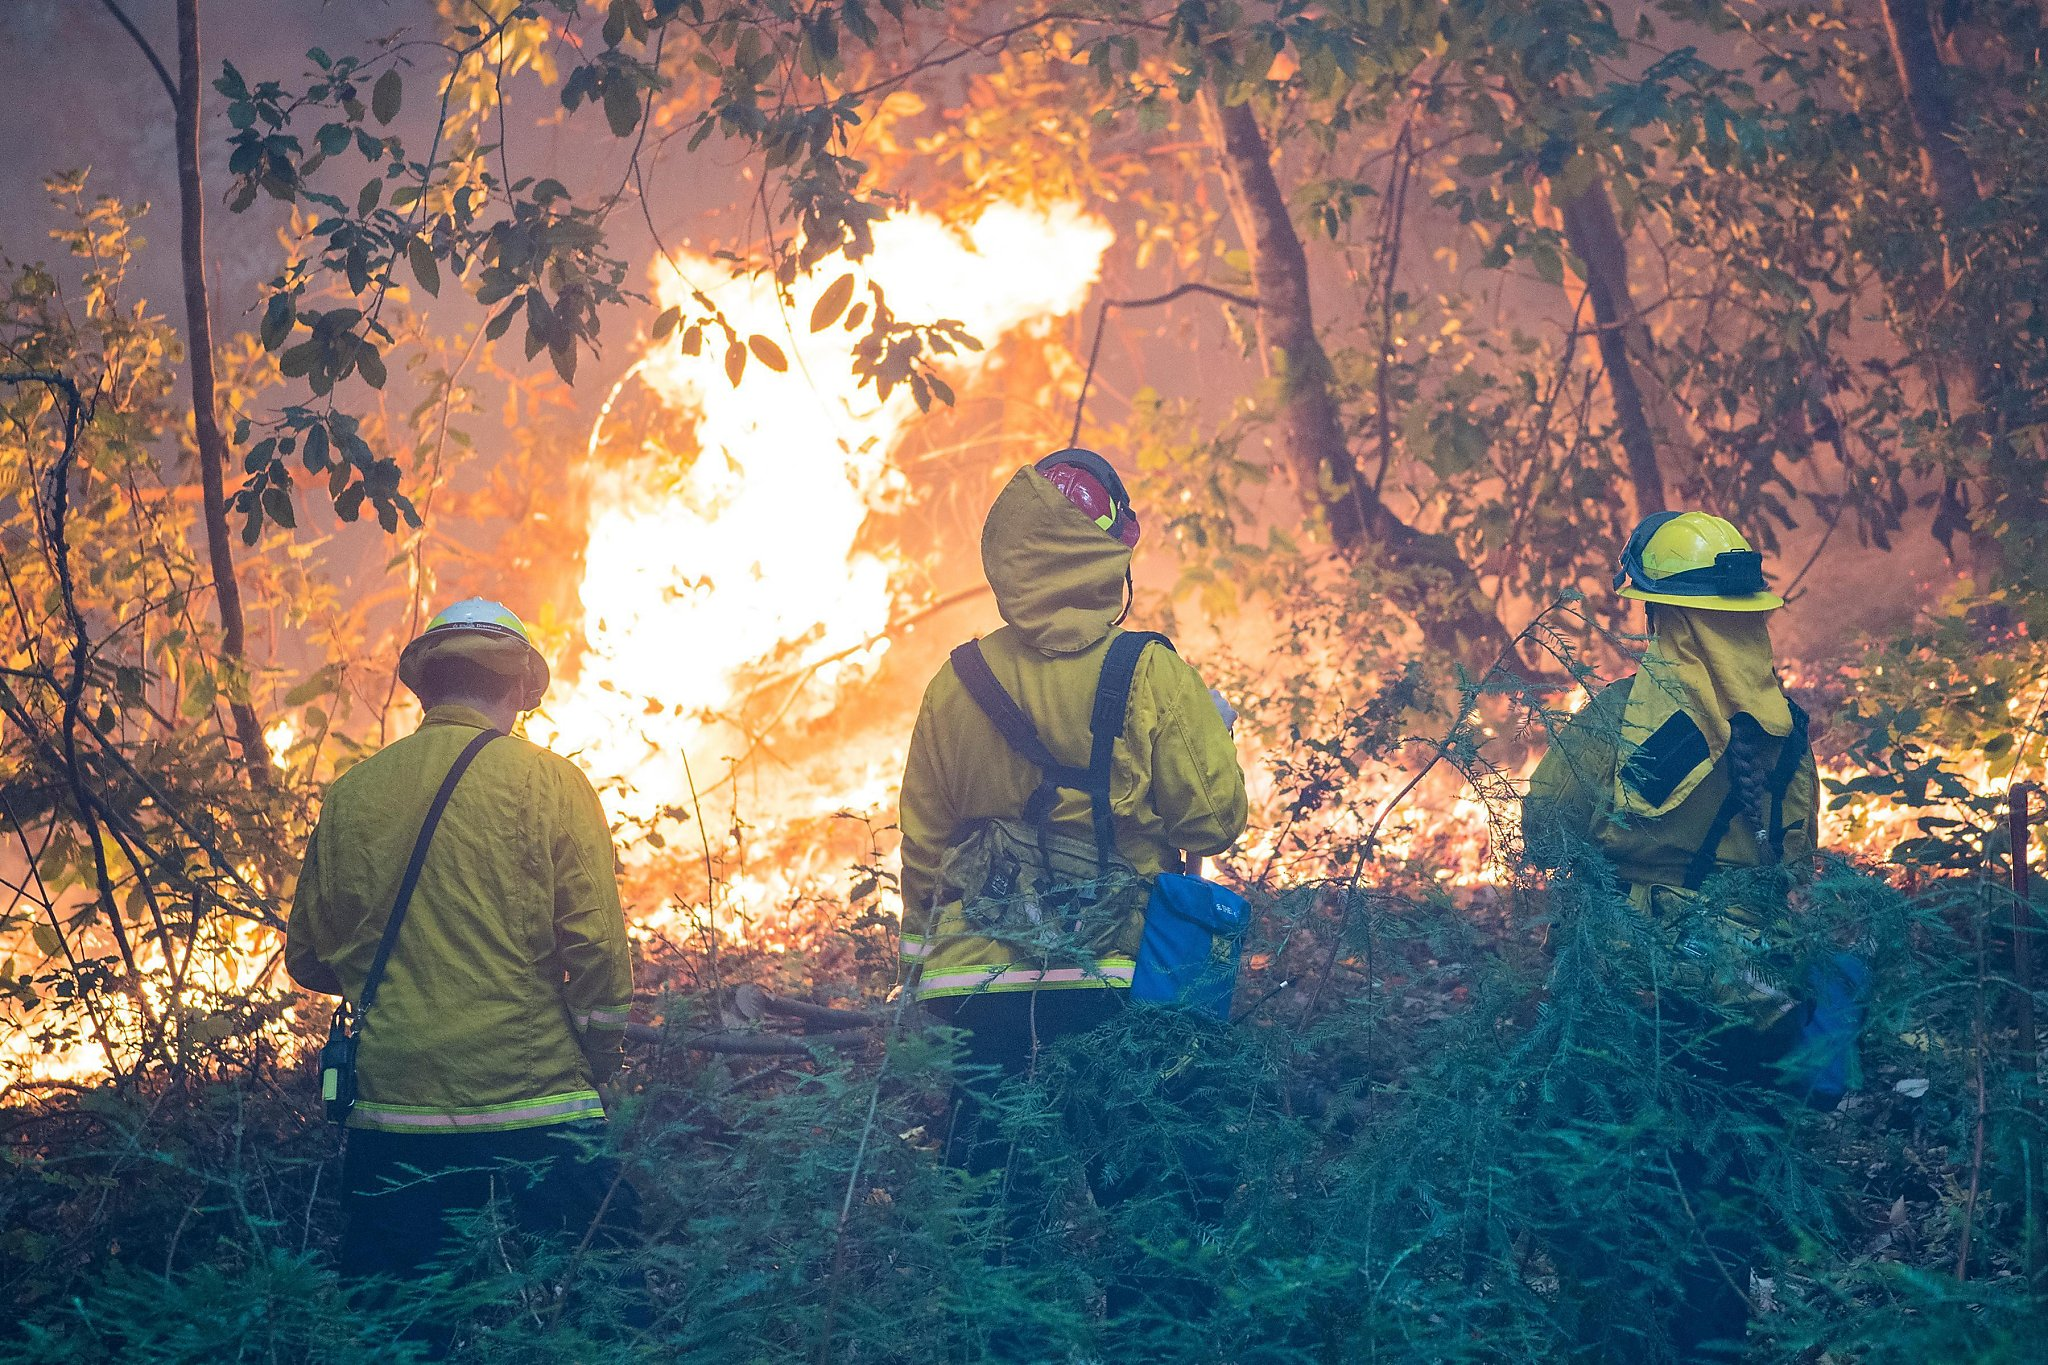 California fires explode: new evacuations from North Complex fires in Butte and Diplomac counties, Zug Fire in Shasta County